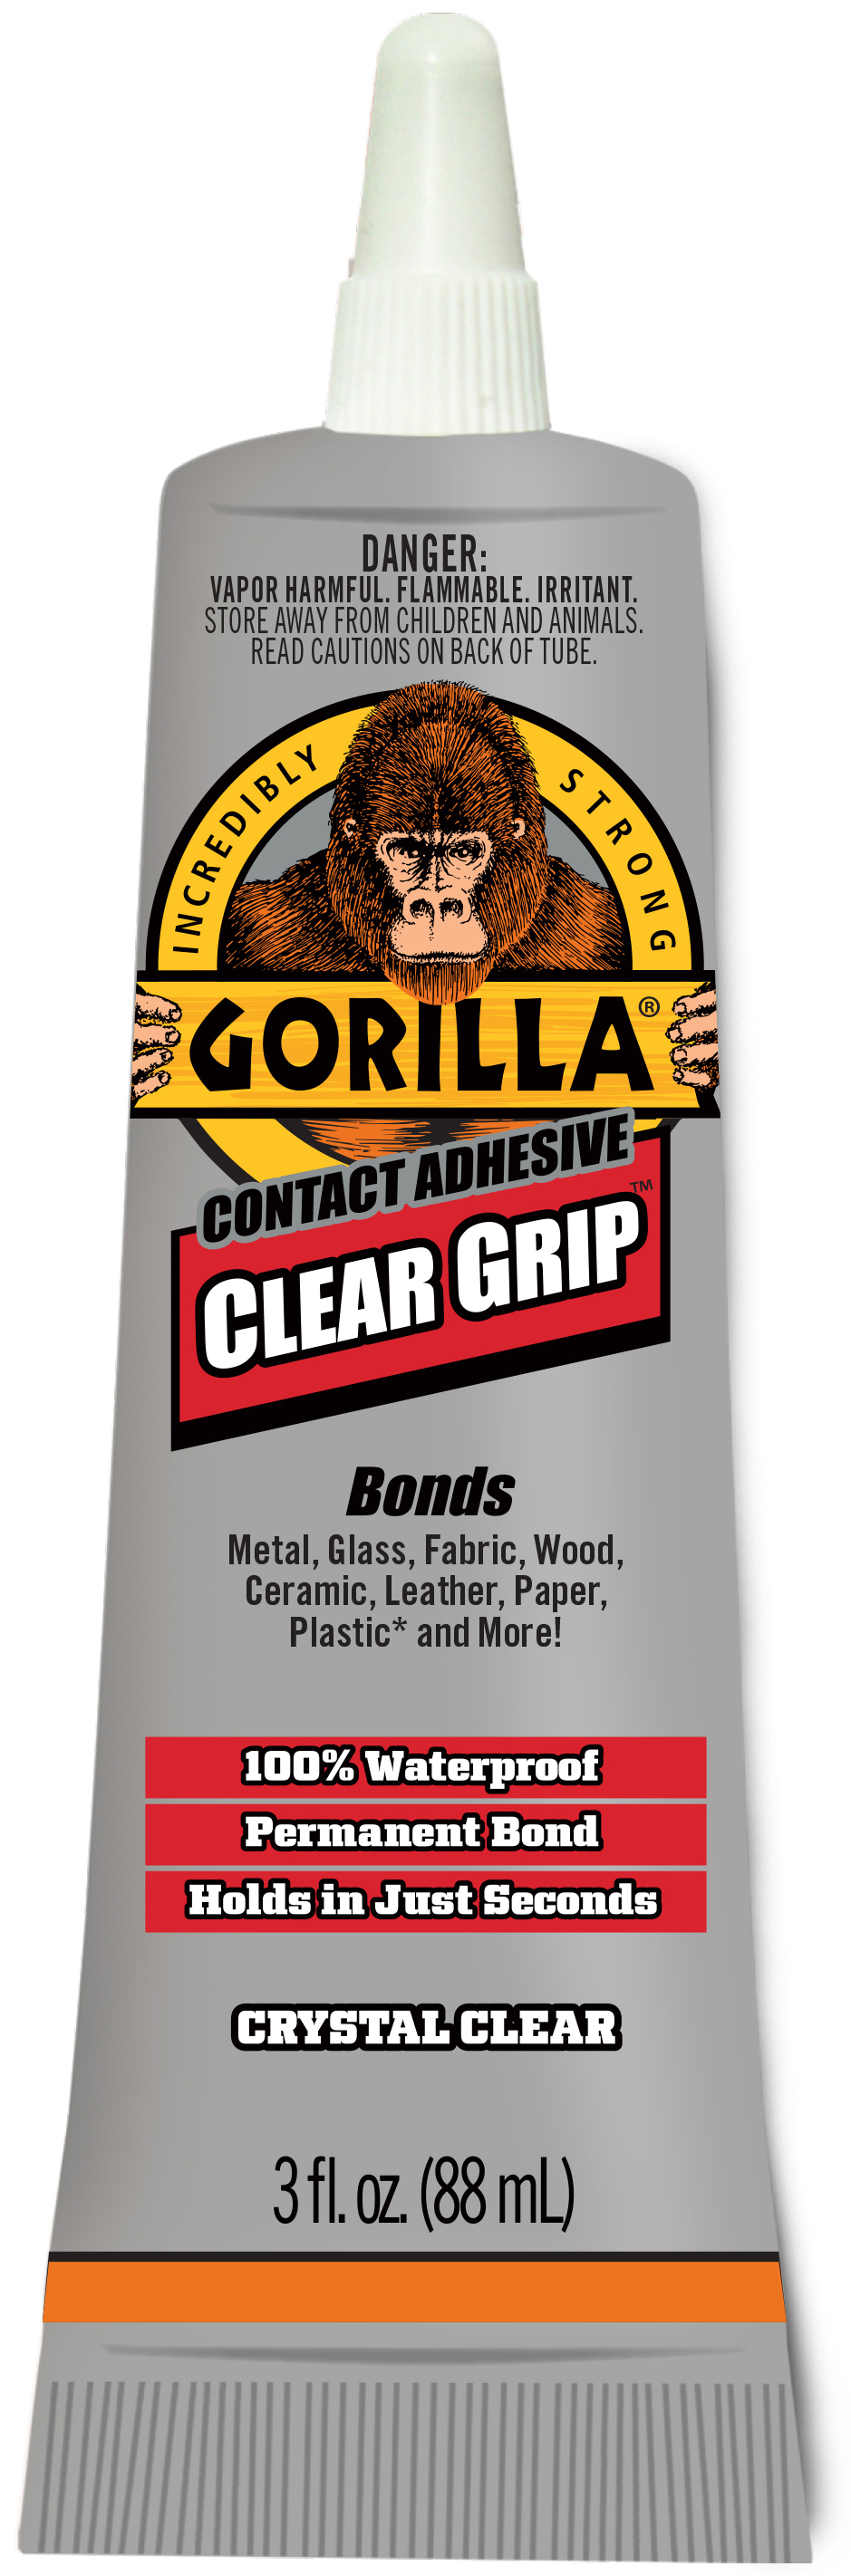 Gorilla Clear Grip Contact Adhesive 3oz